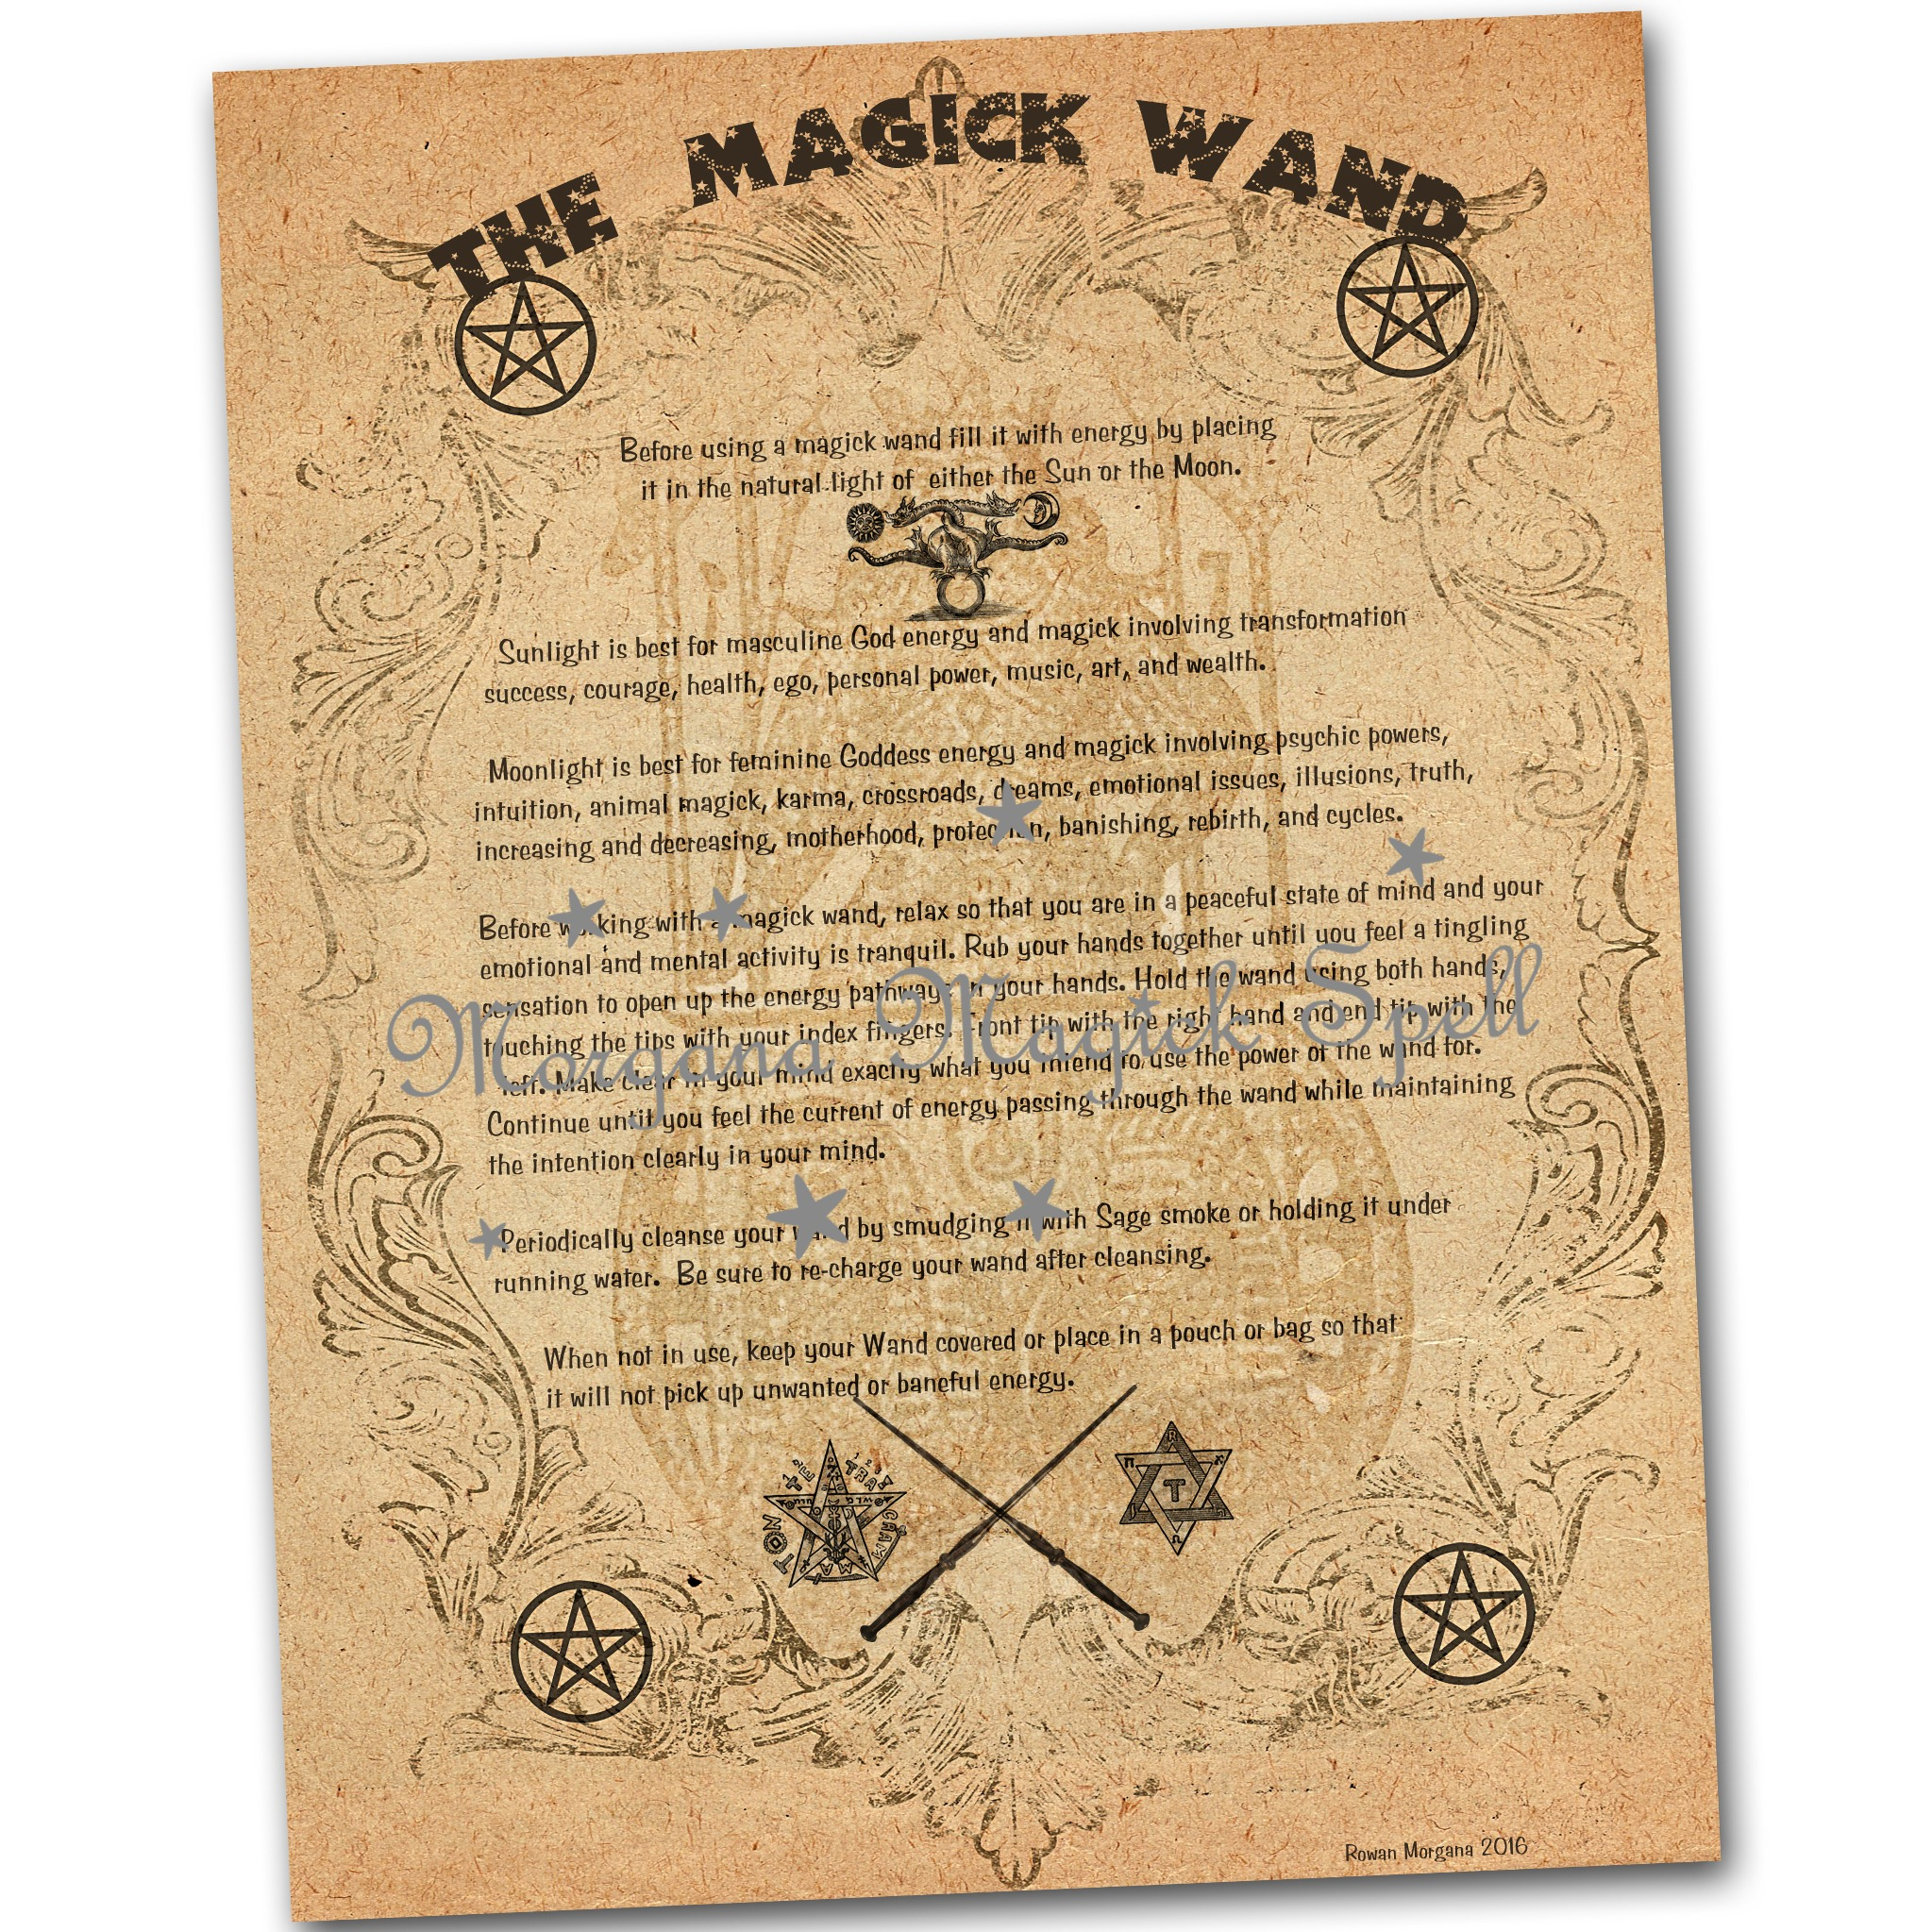 The MAGICK WAND